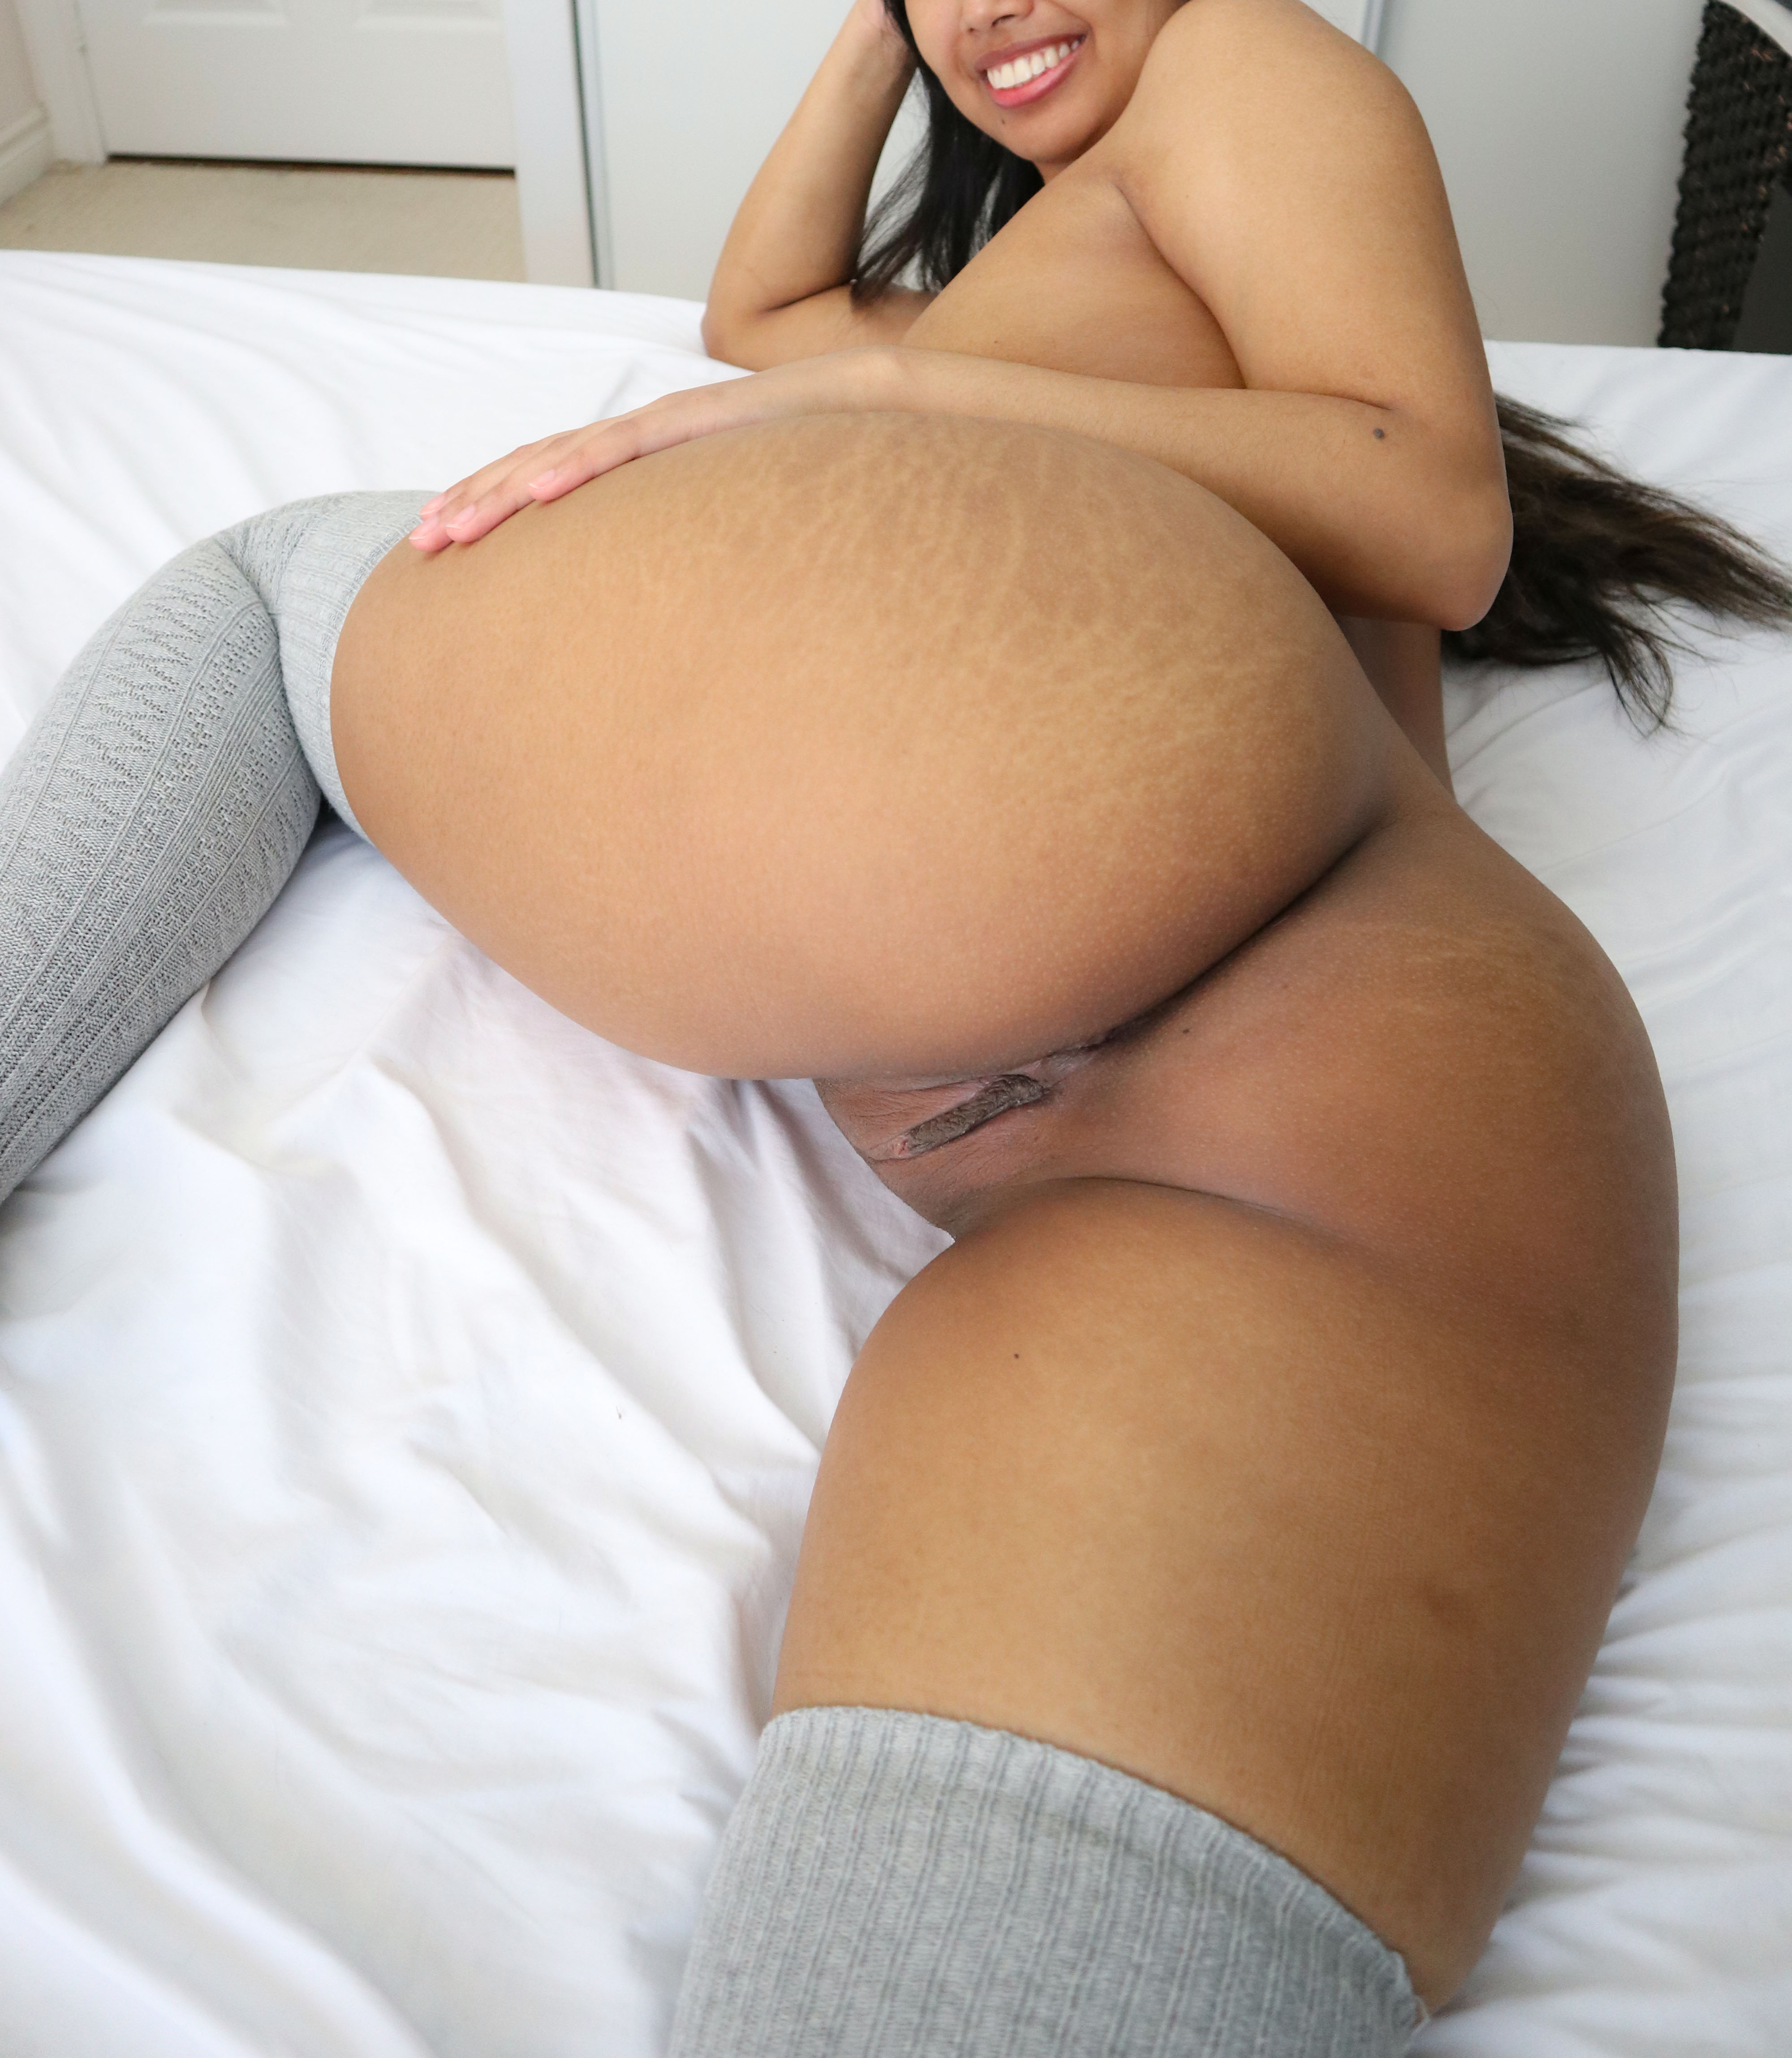 One of our naked asian pics called My fat filipina ass is covered in tiger stripes, would you still fuck me?